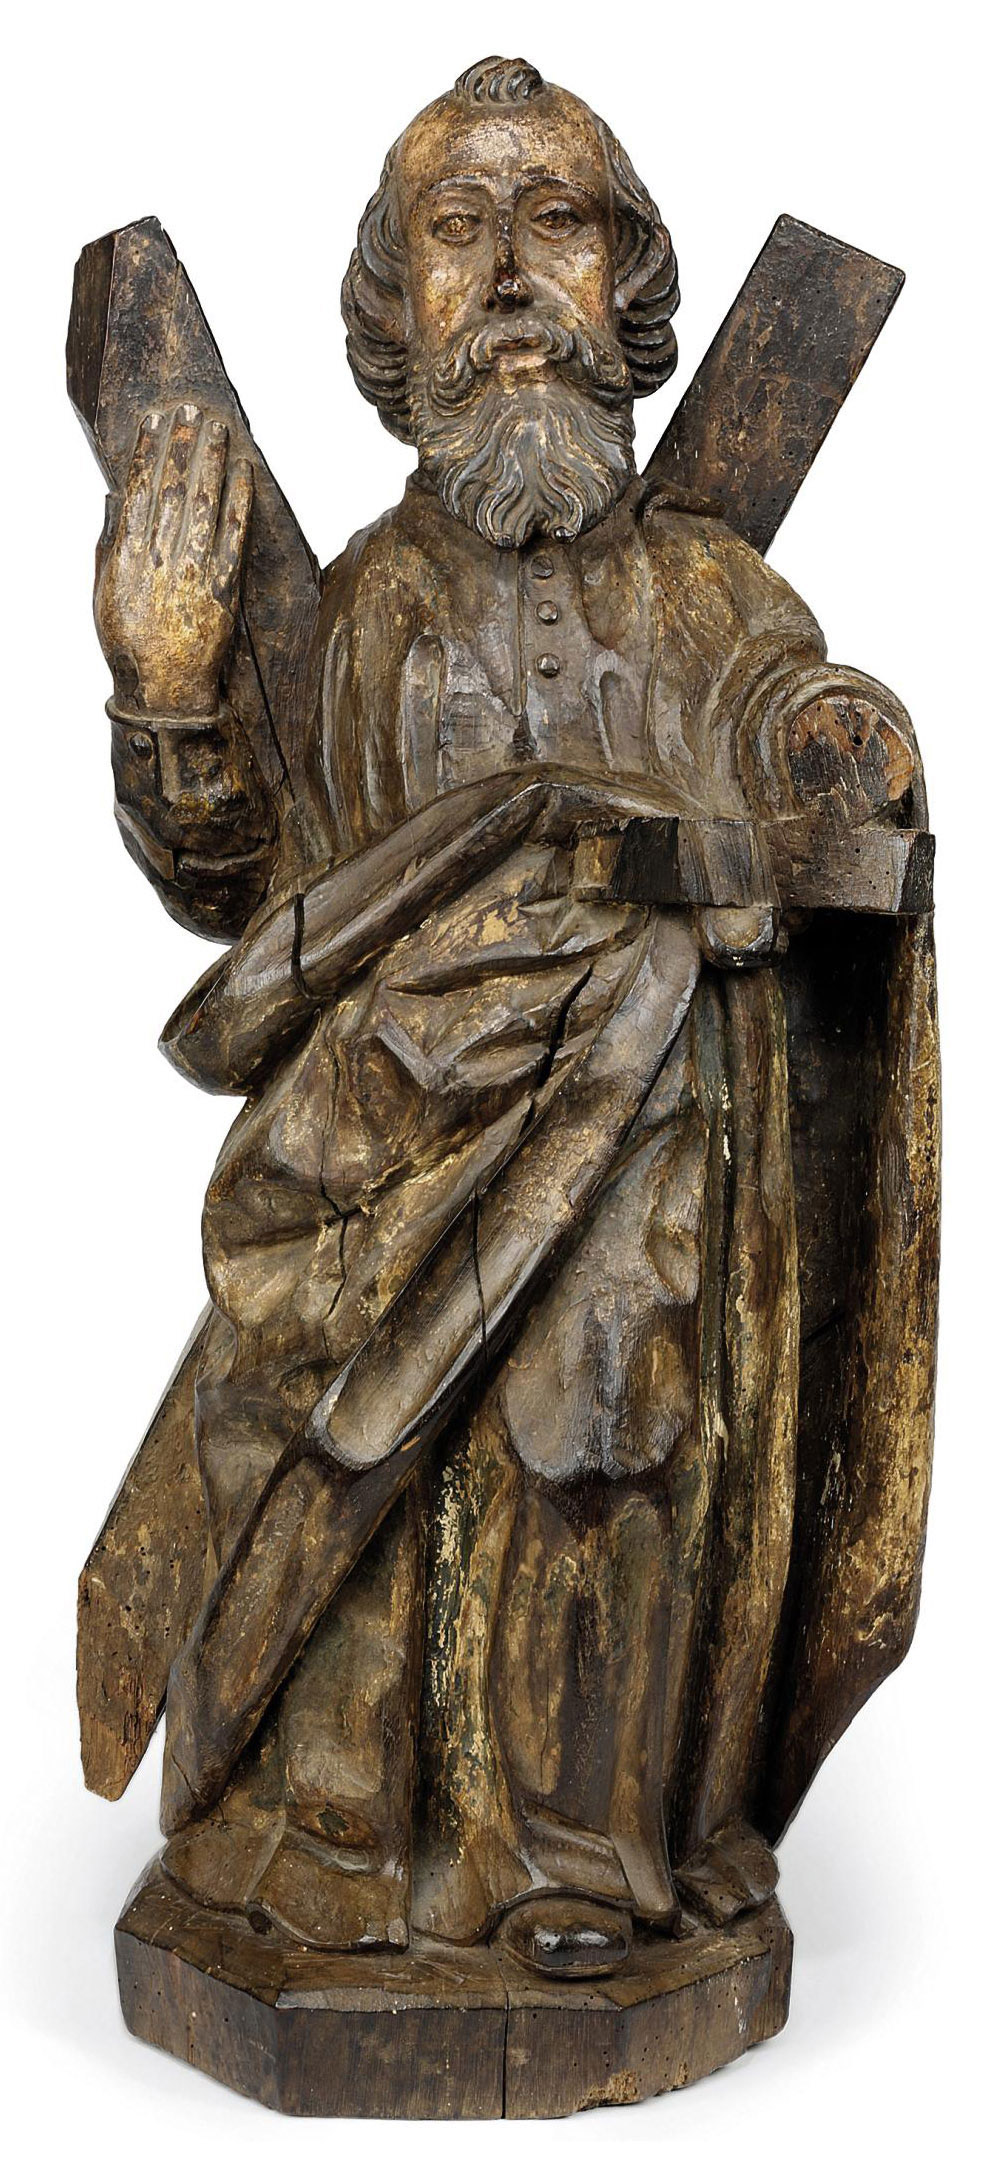 A CARVED WOOD FIGURE OF ST. ANDREW